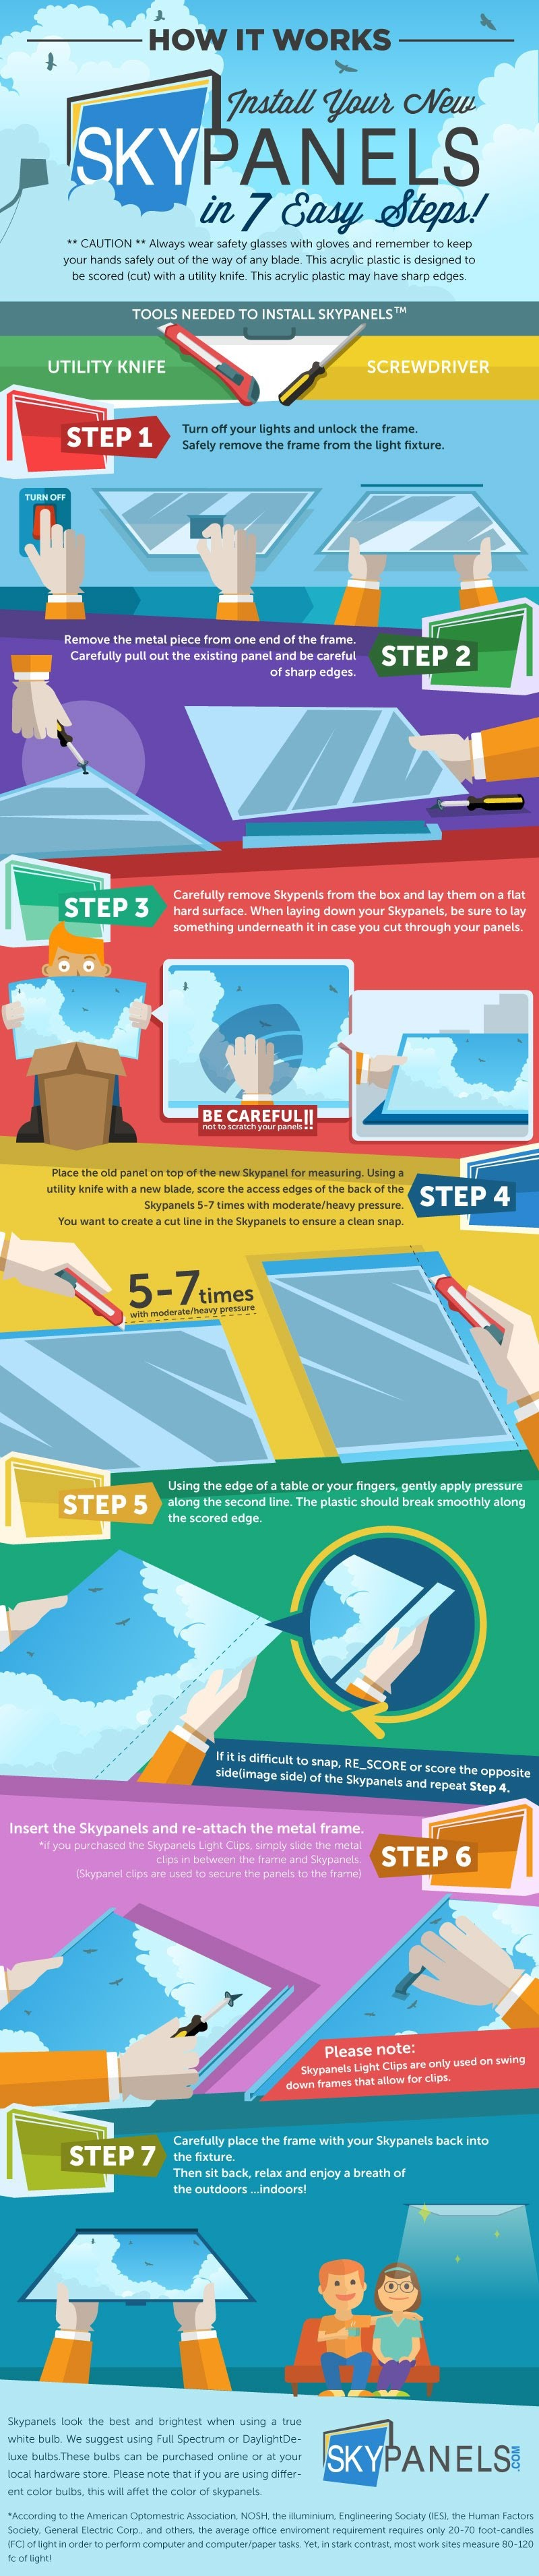 Bring Outdoor In: How to Install Skypanels in 7 Easy Steps - Infographic